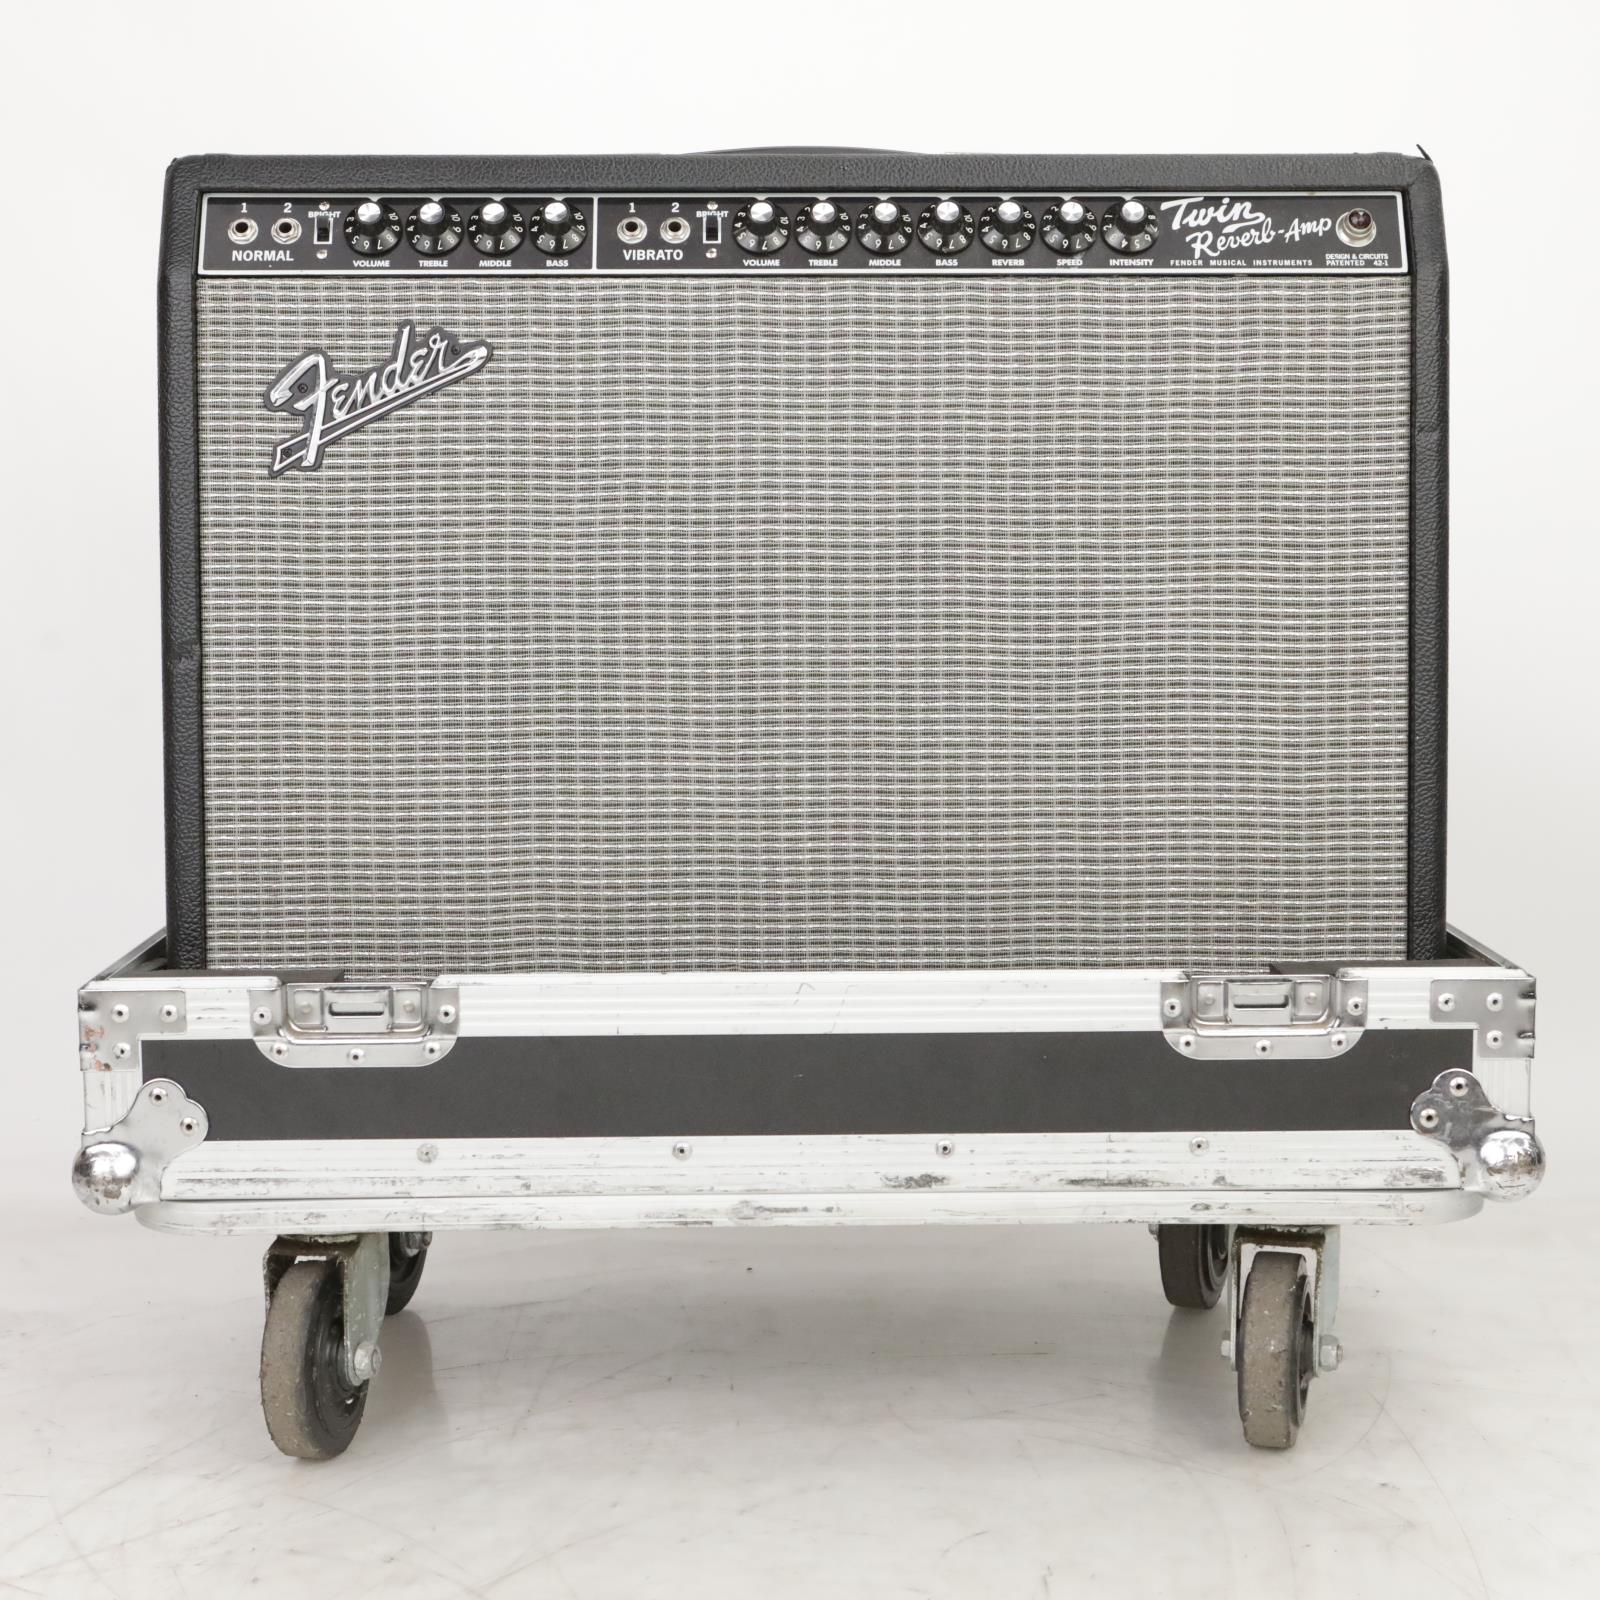 1993 Fender 65 Twin Reverb Tube Combo Amp 2x12 Guitar Amplifier Road Case #36791